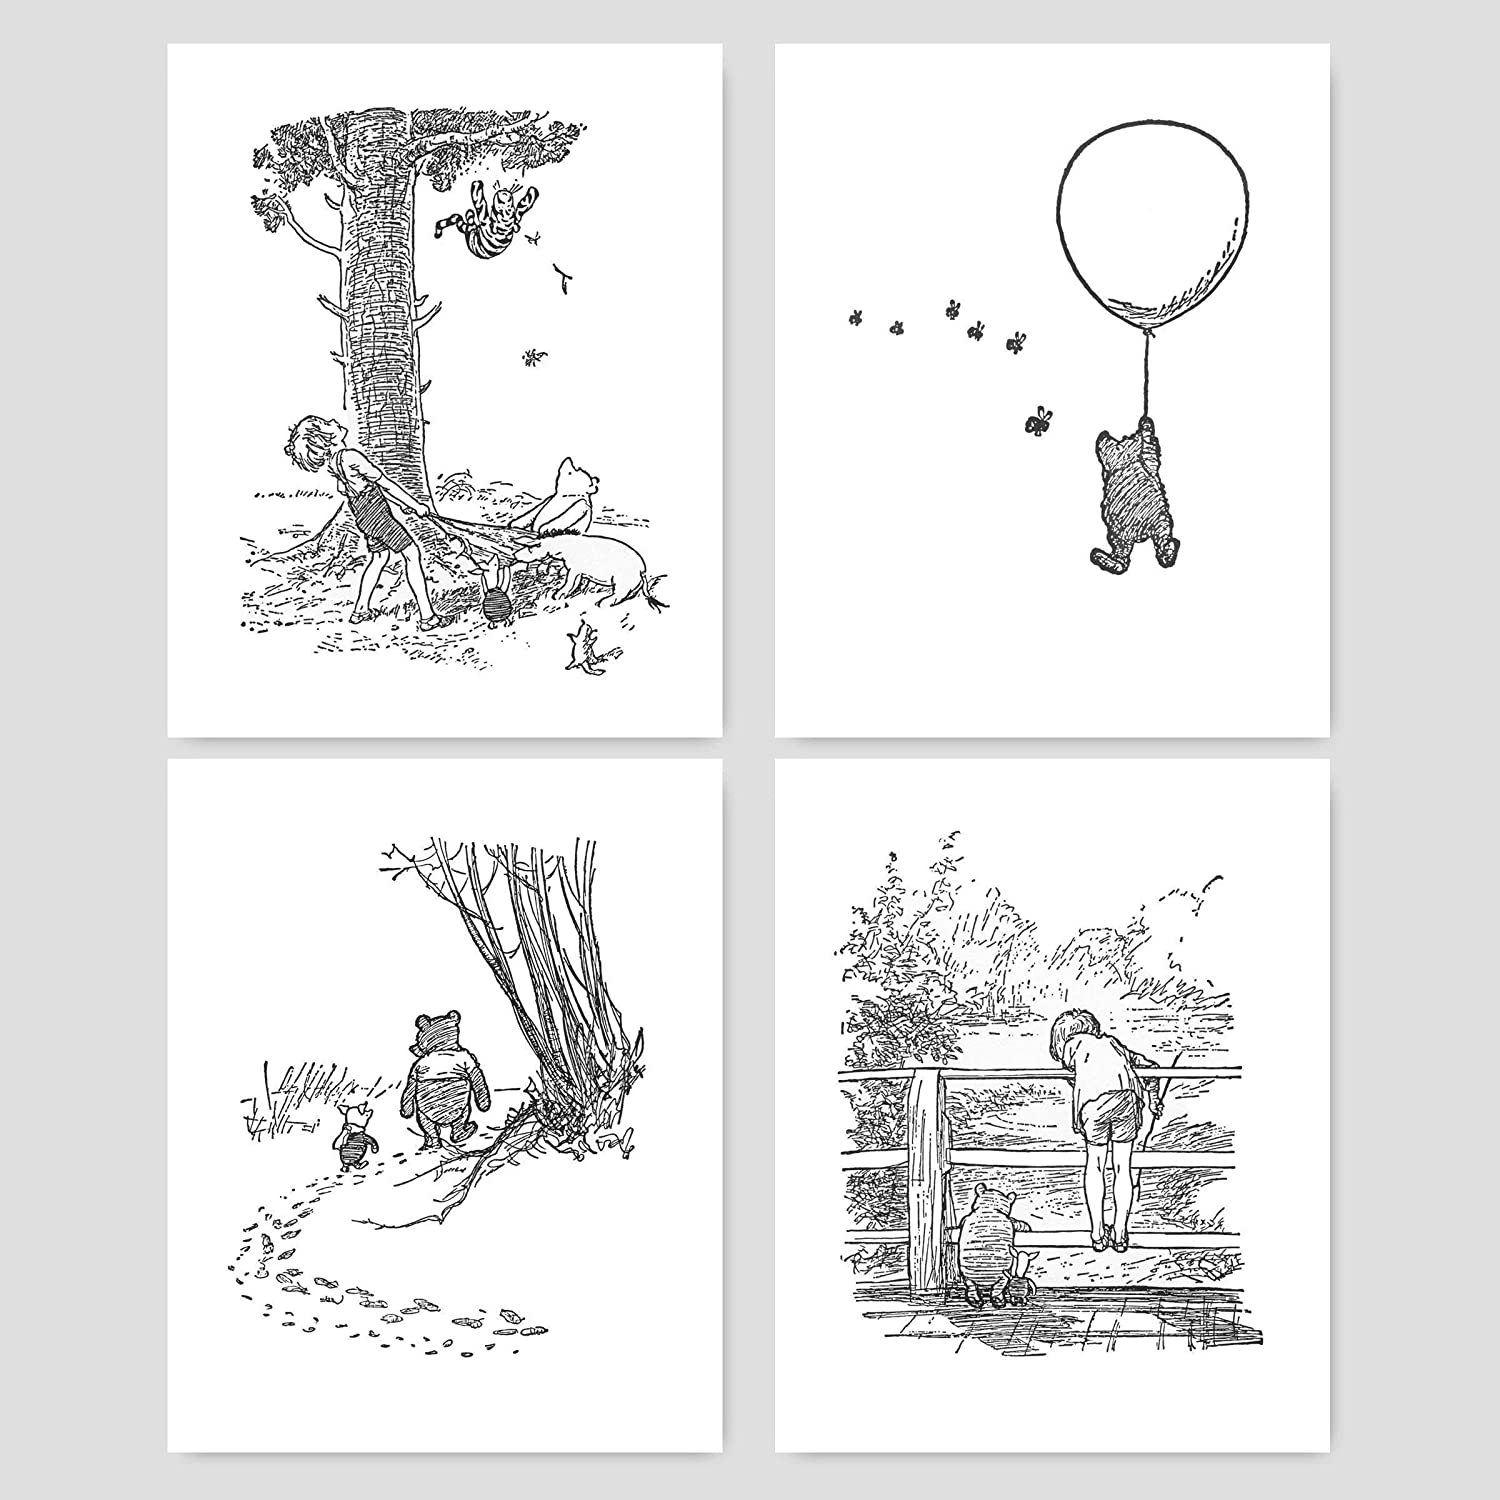 Winnie the pooh black and white nursery art baby wall prints boys girls room 8x10 unframed set of 4